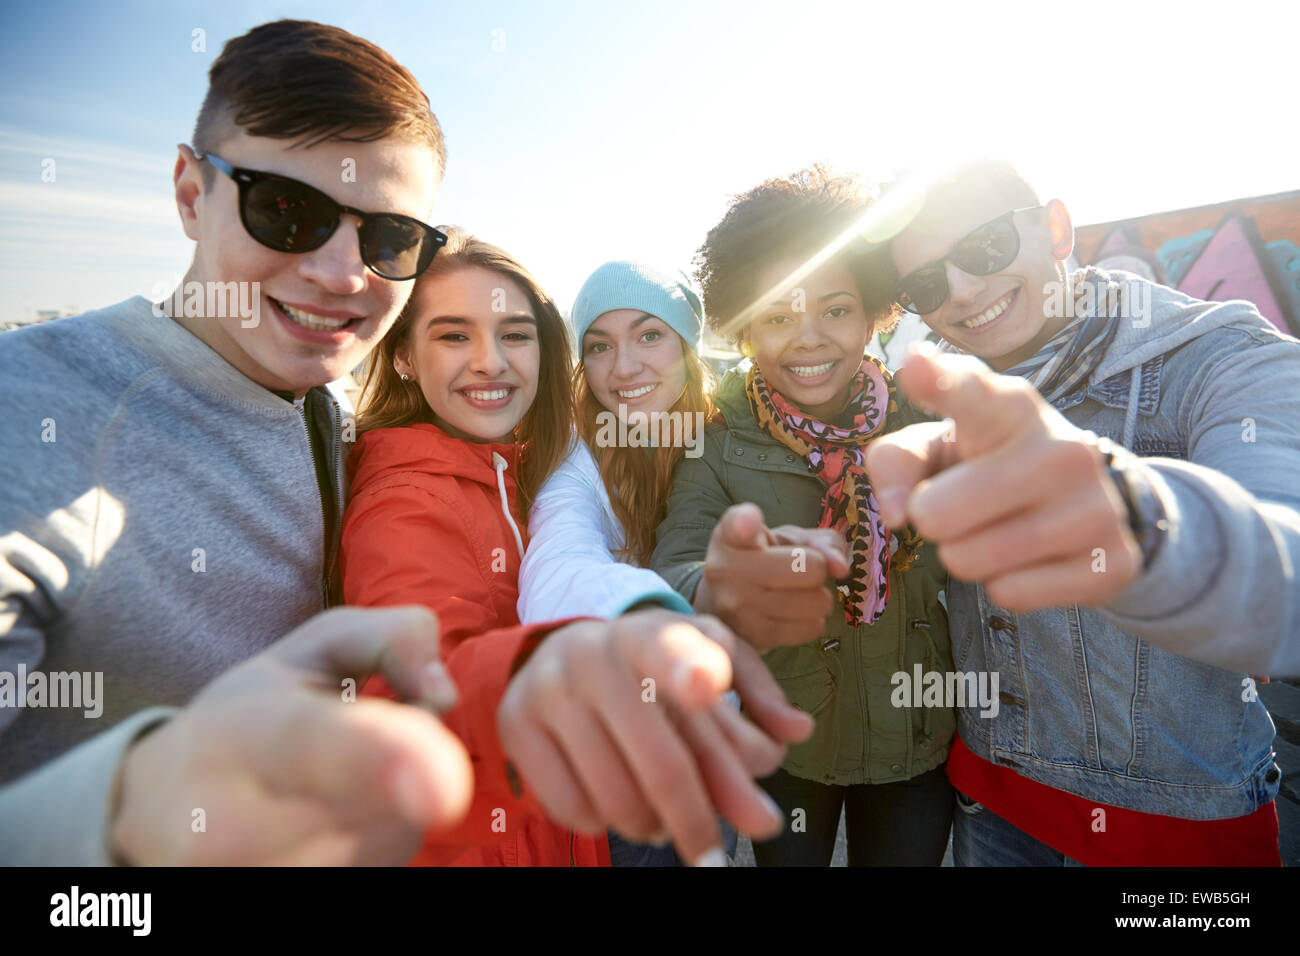 Happy girl pointing fingers on street Photo Stock